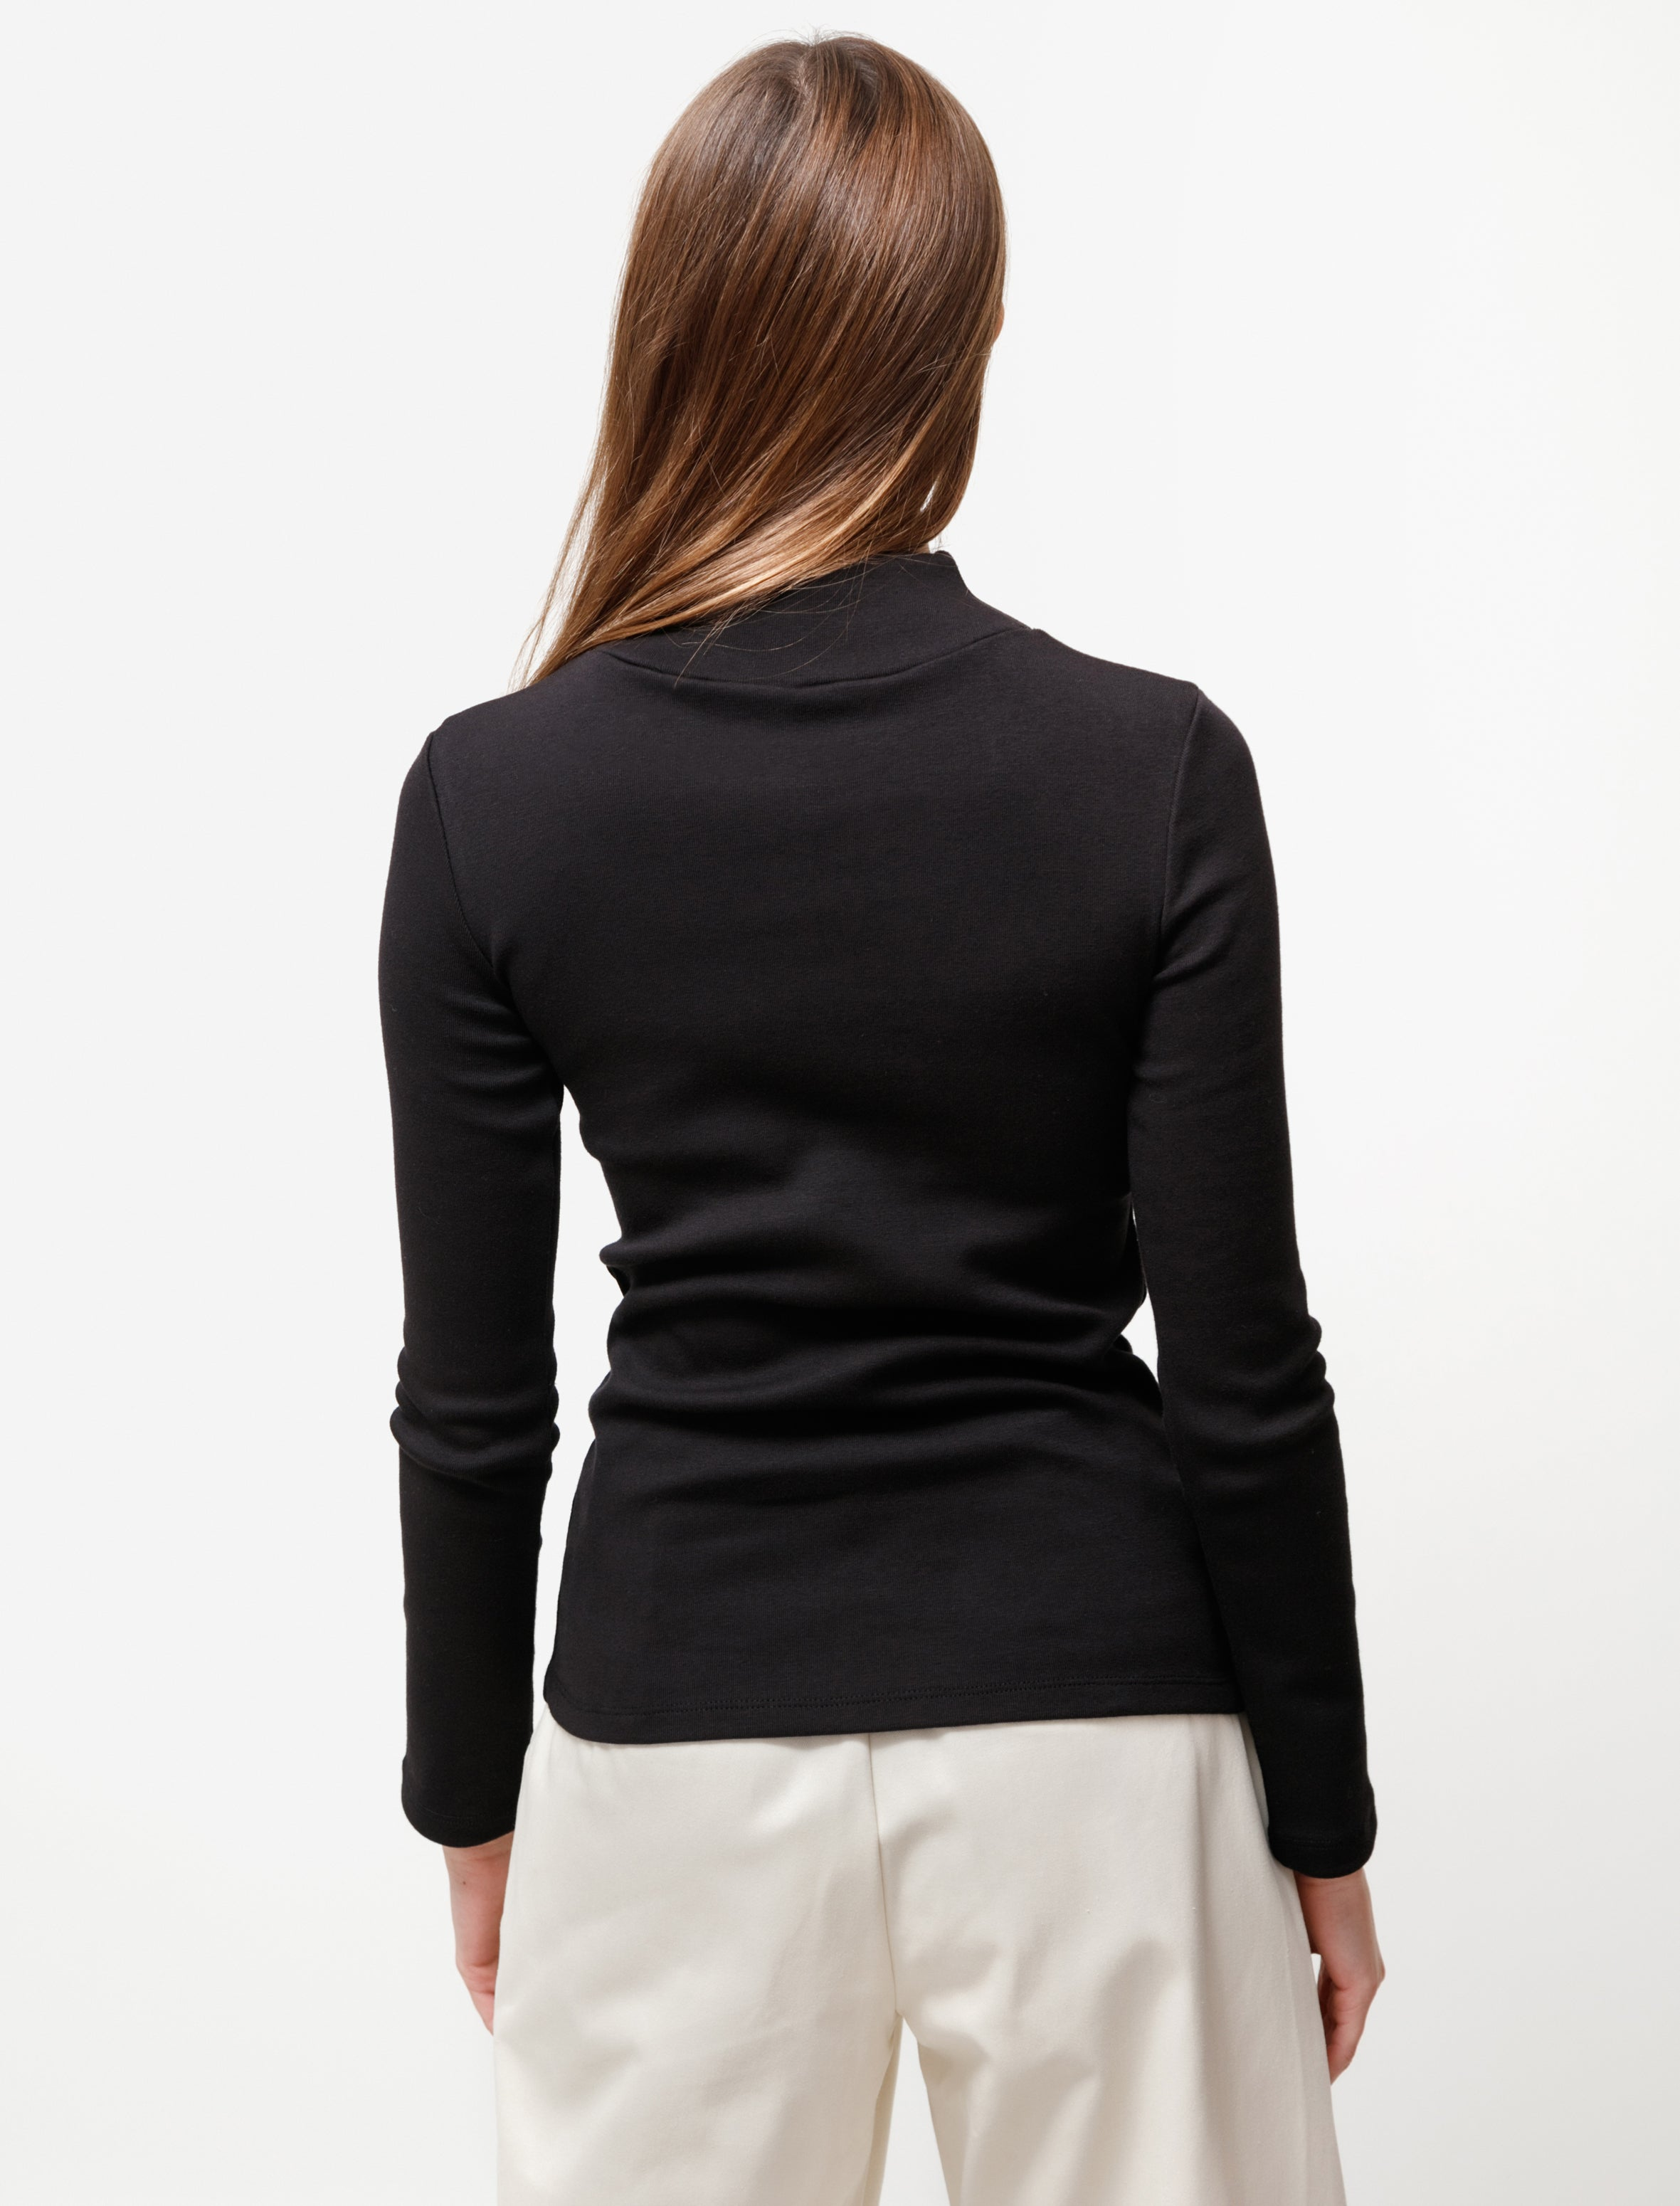 Priory Plex Mockneck Black